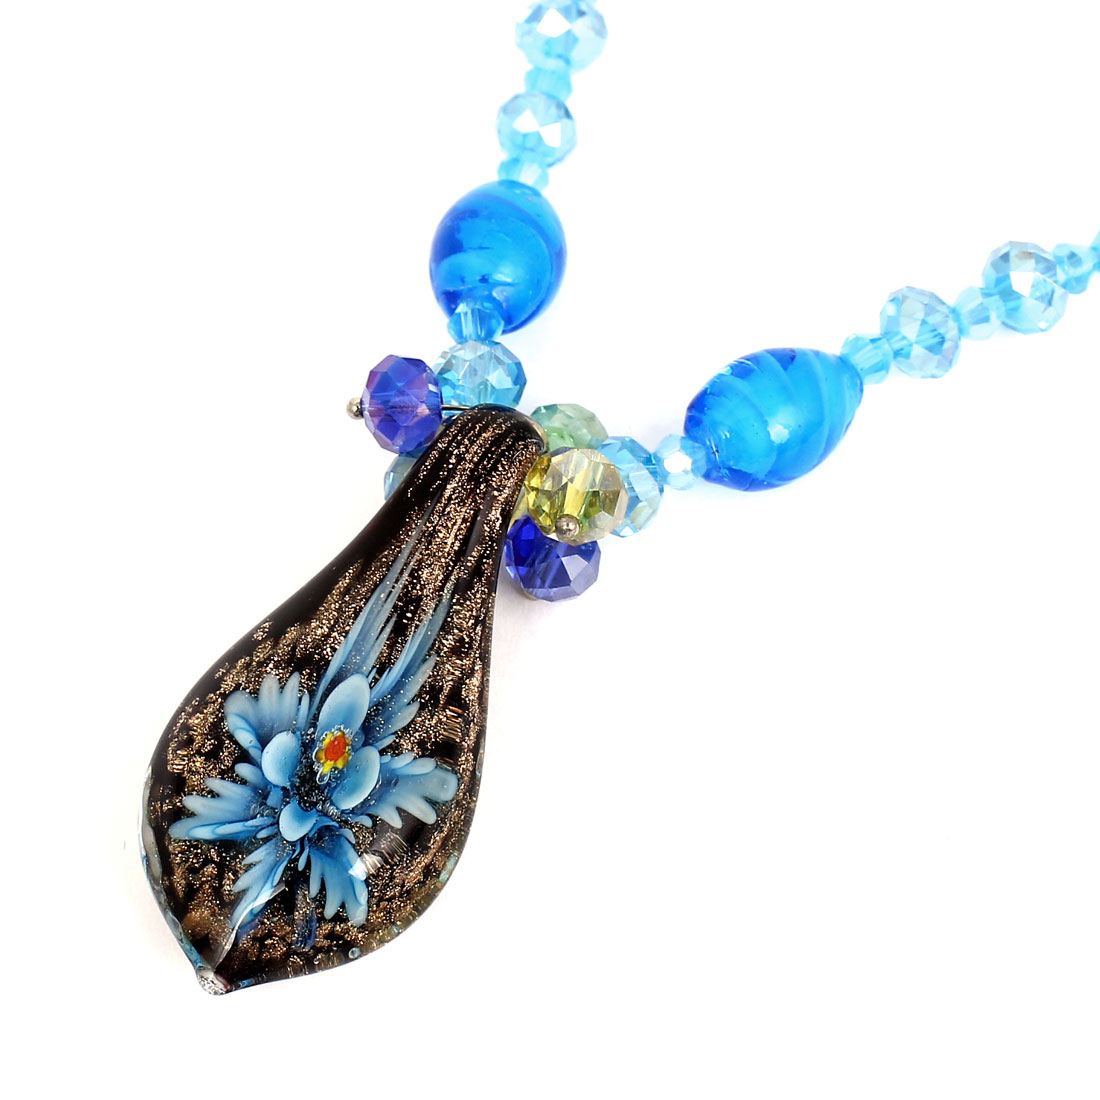 Blue Faceted Rhinestone Inlaid Neck String Black Glass Flower Press Pendant Necklace for Lady